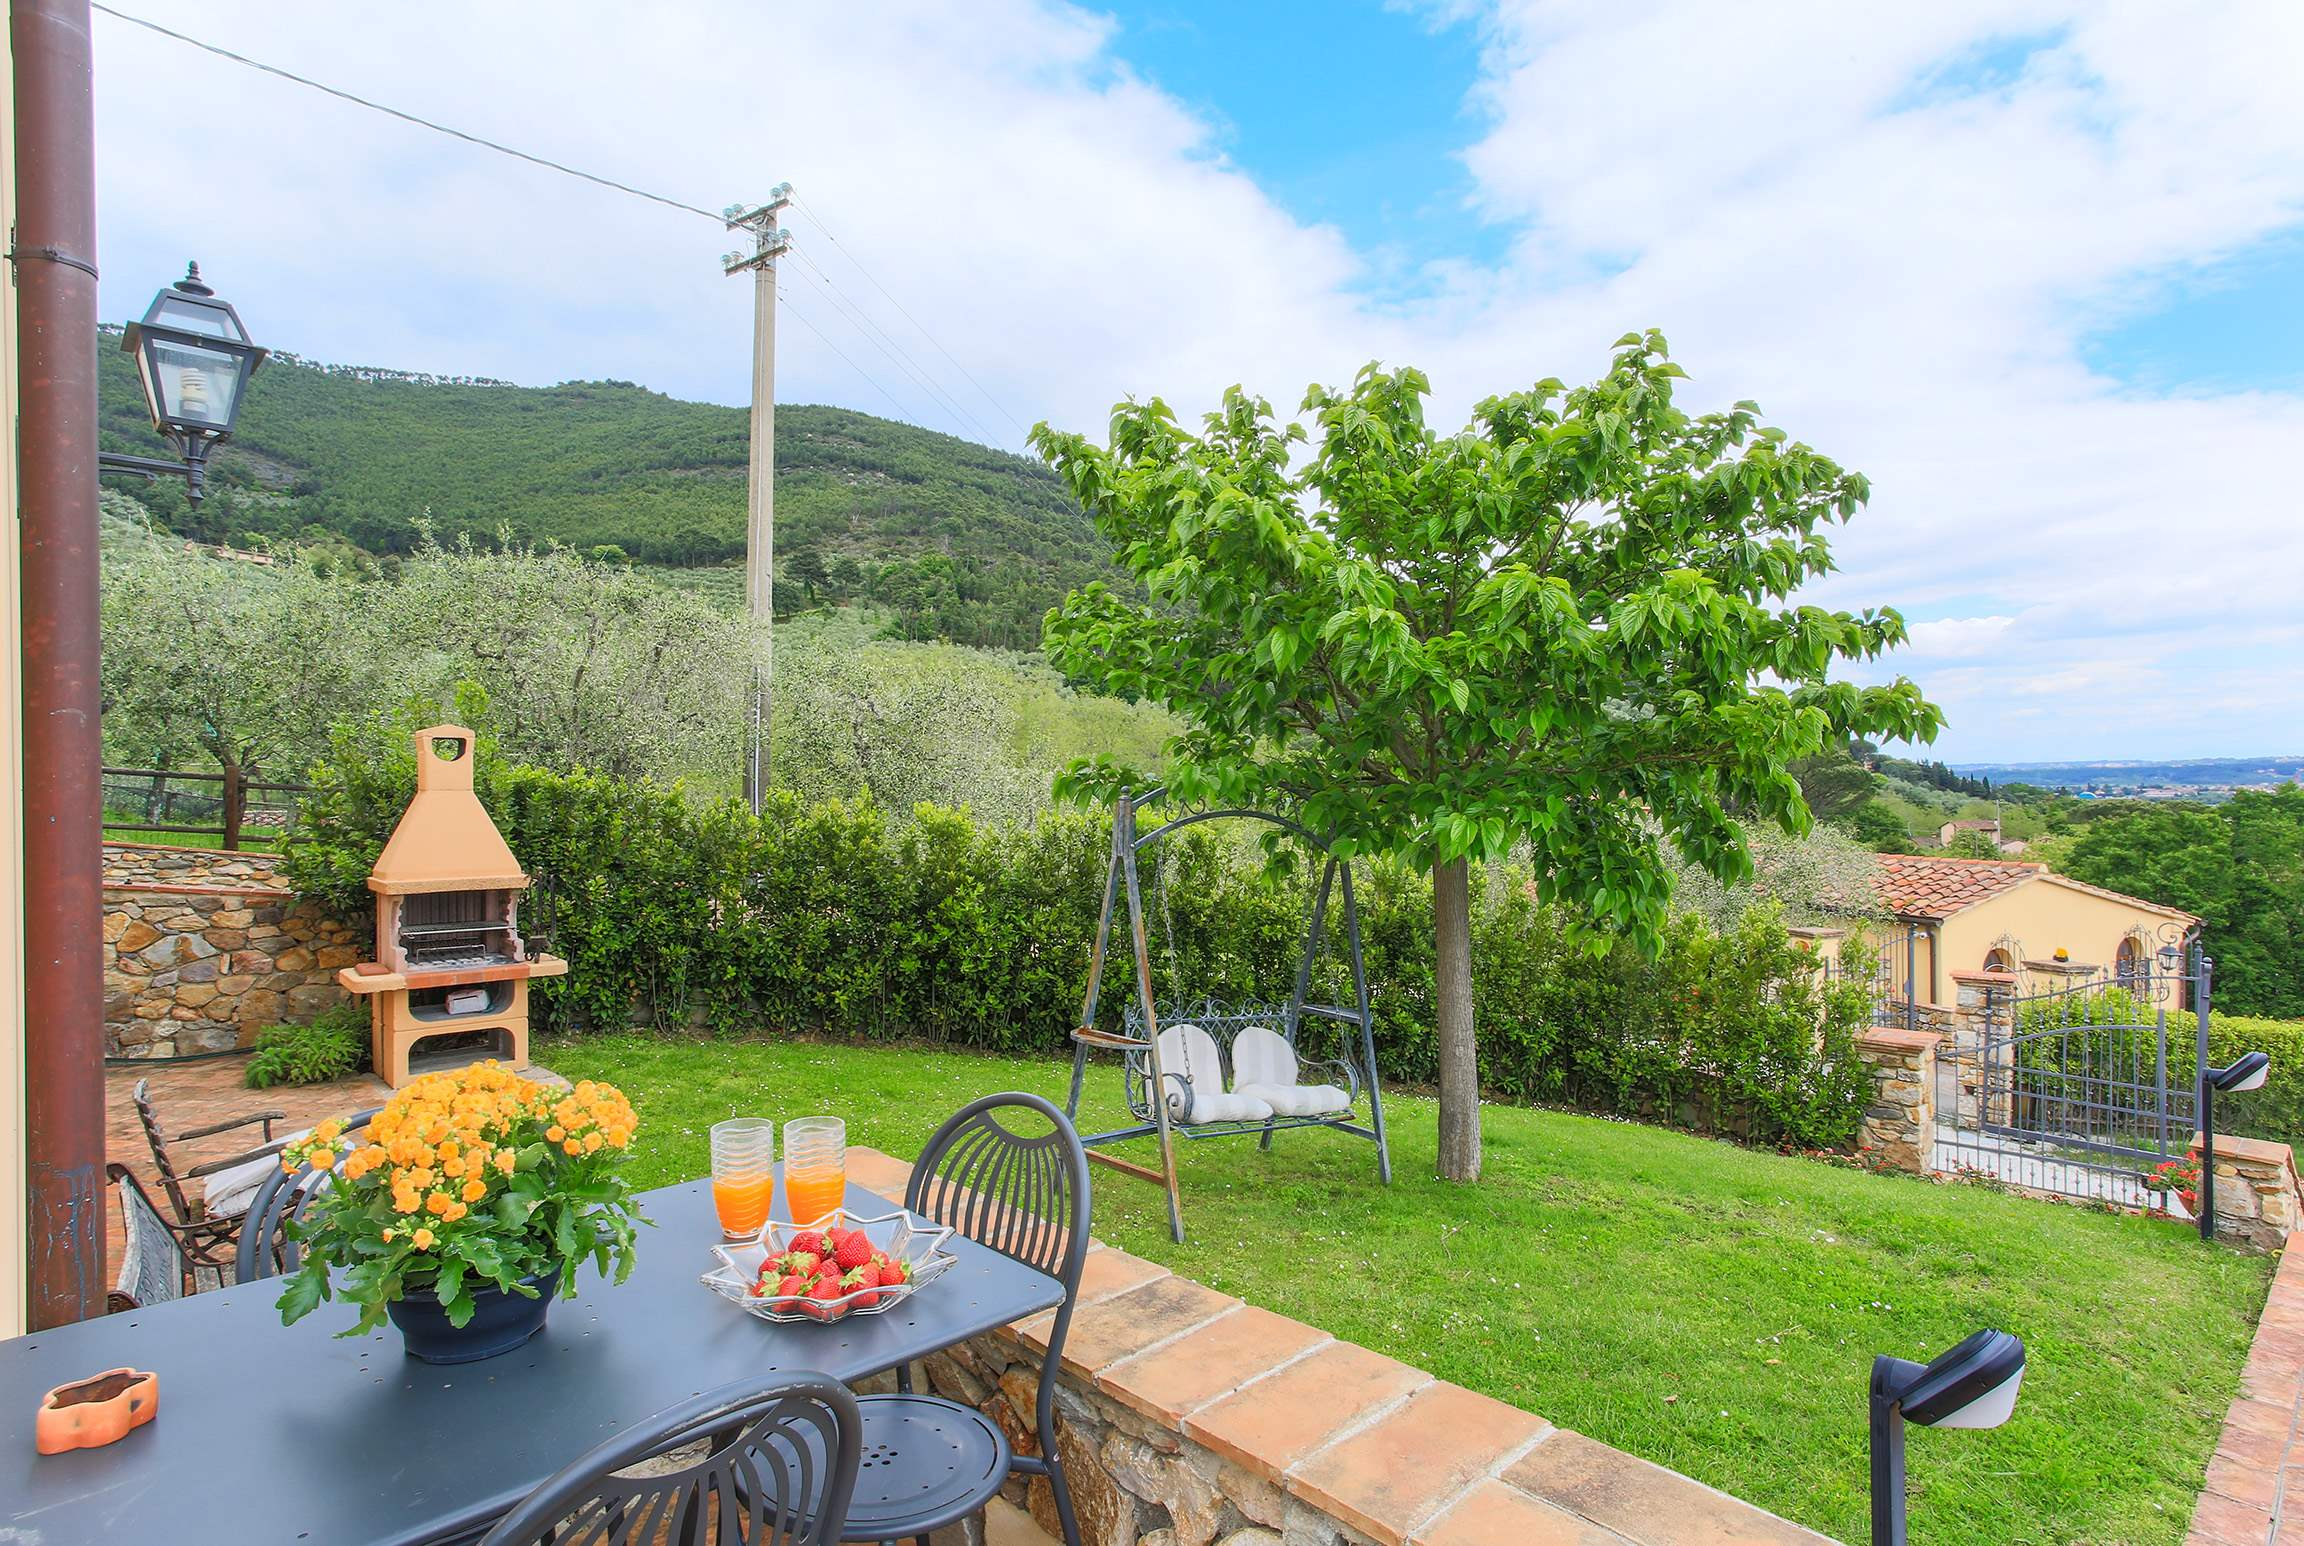 Casa Di Dante, 3 bedroom villa in North Tuscany - Pisa & Lucca Area, Tuscany Photo #18